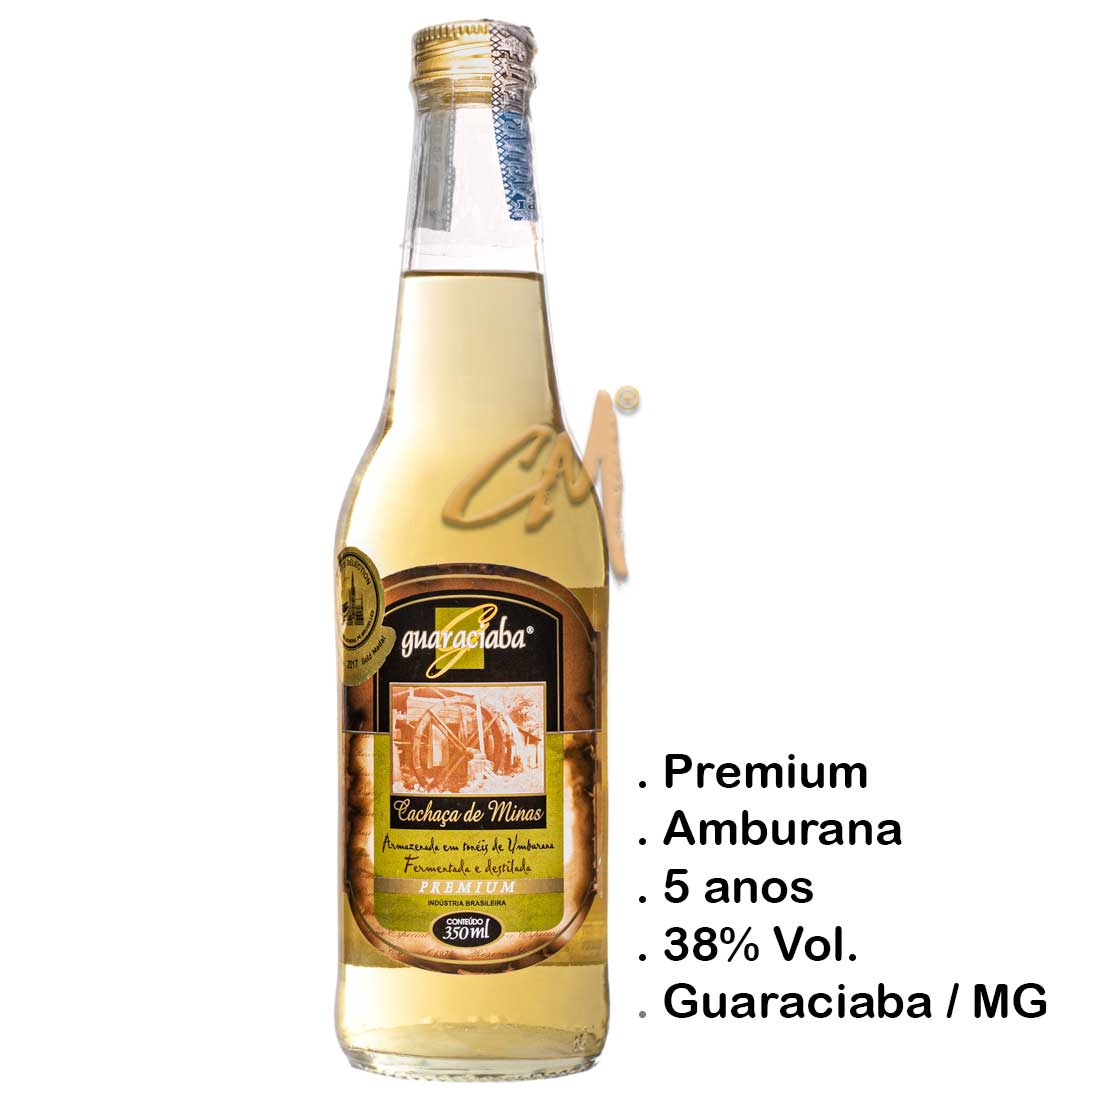 Cachaça Guaraciaba Premium 350 ml (Guaraciaba - MG)